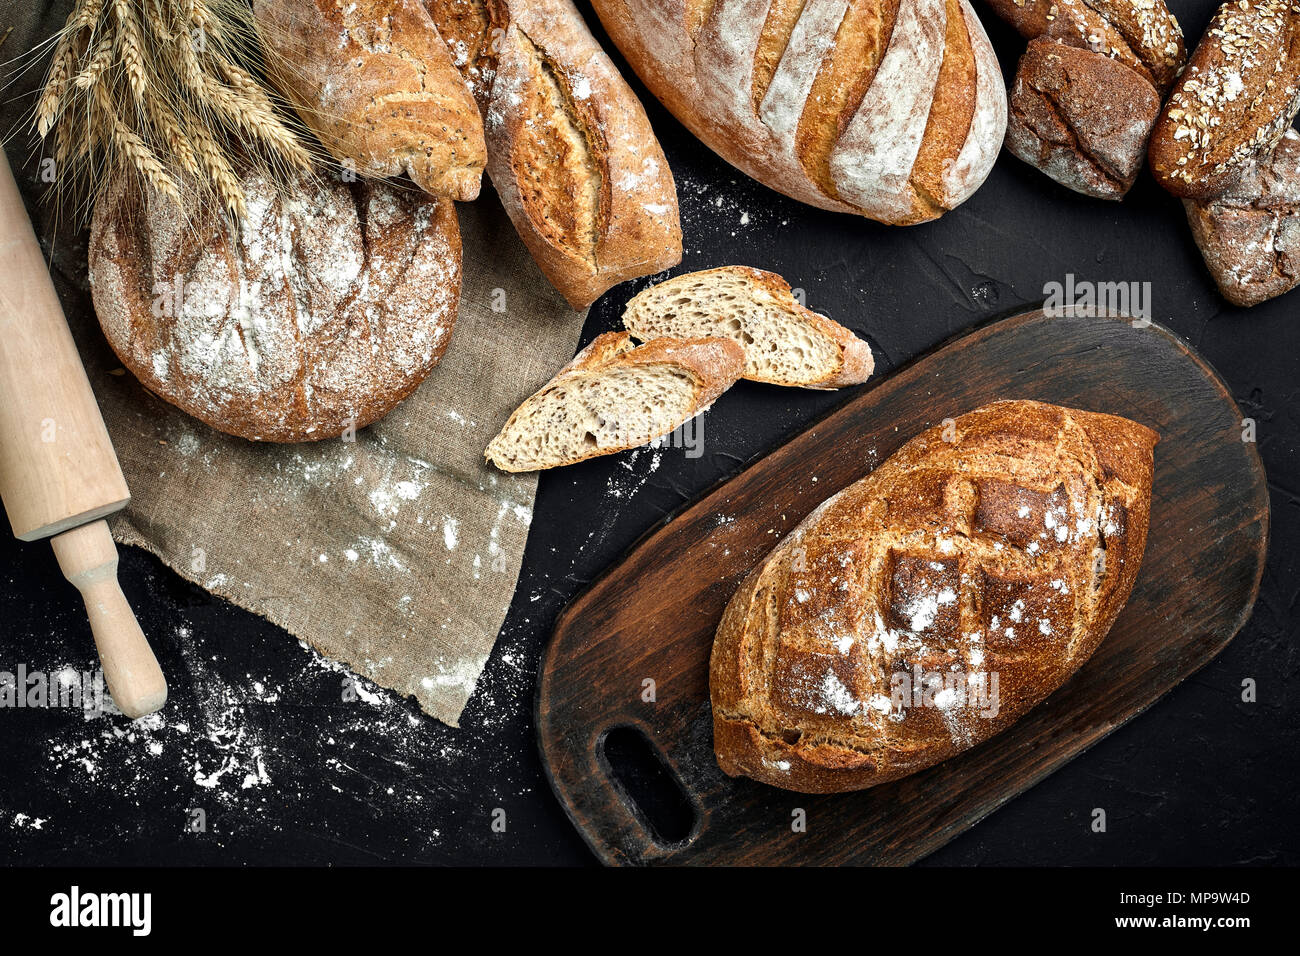 Fresh bread, wooden board and cutting knife on black table - Stock Image